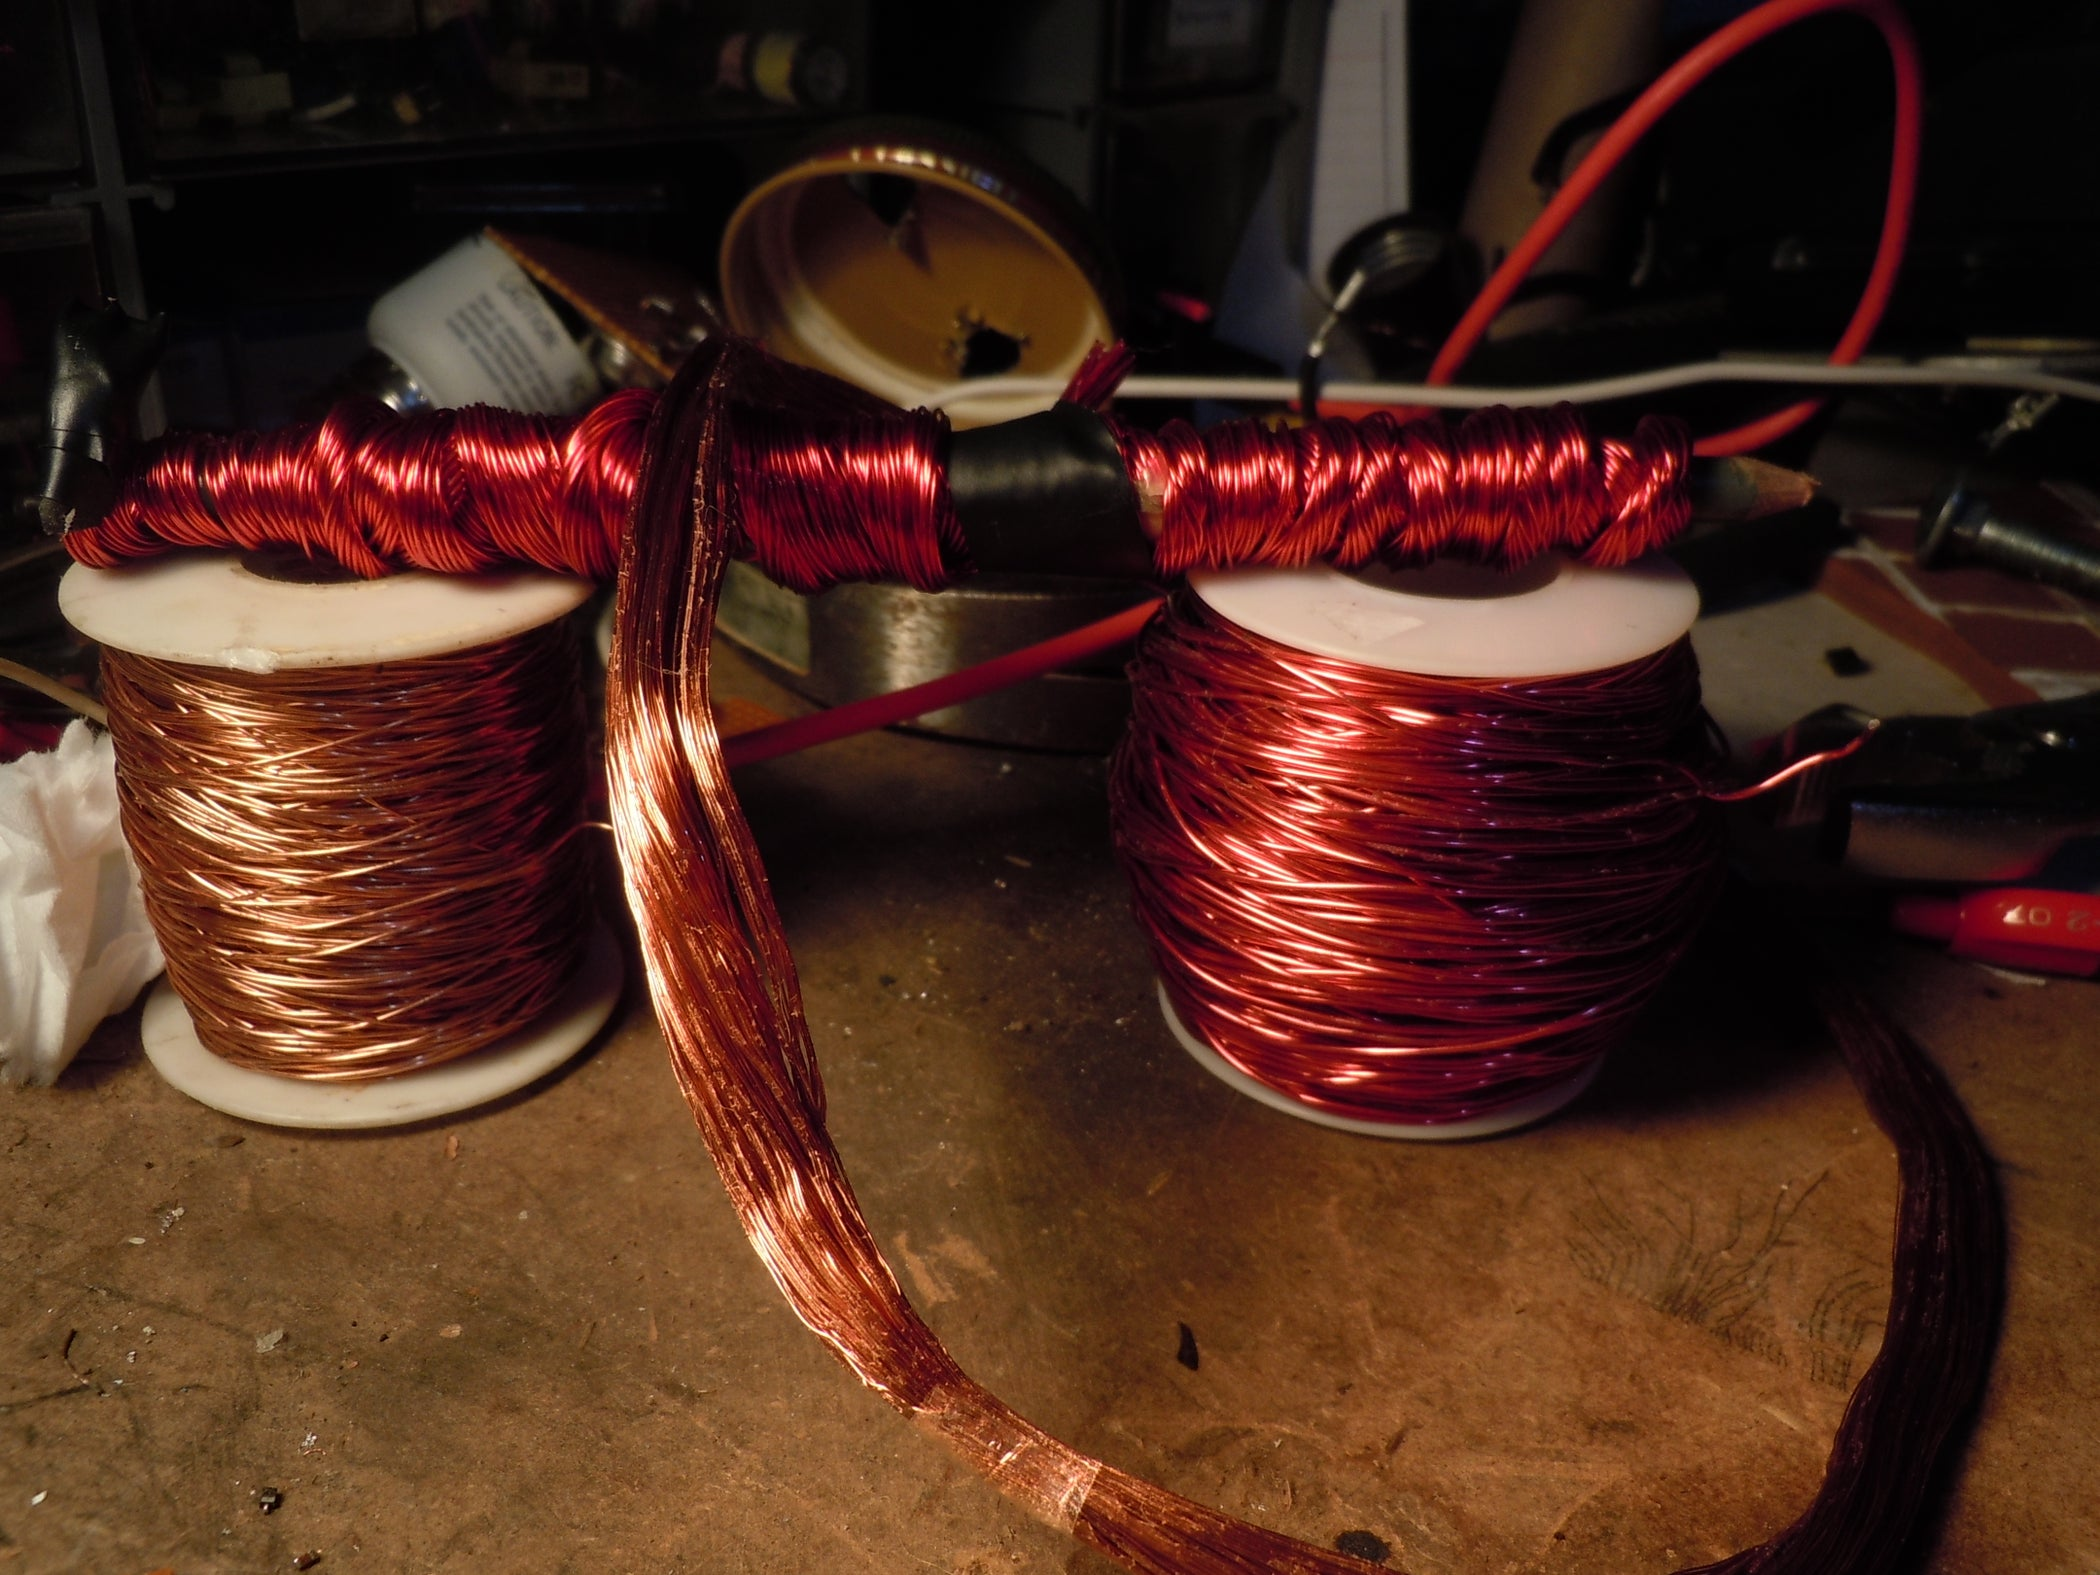 How to Get Tons of Free Enameled Copper Wire: 4 Steps